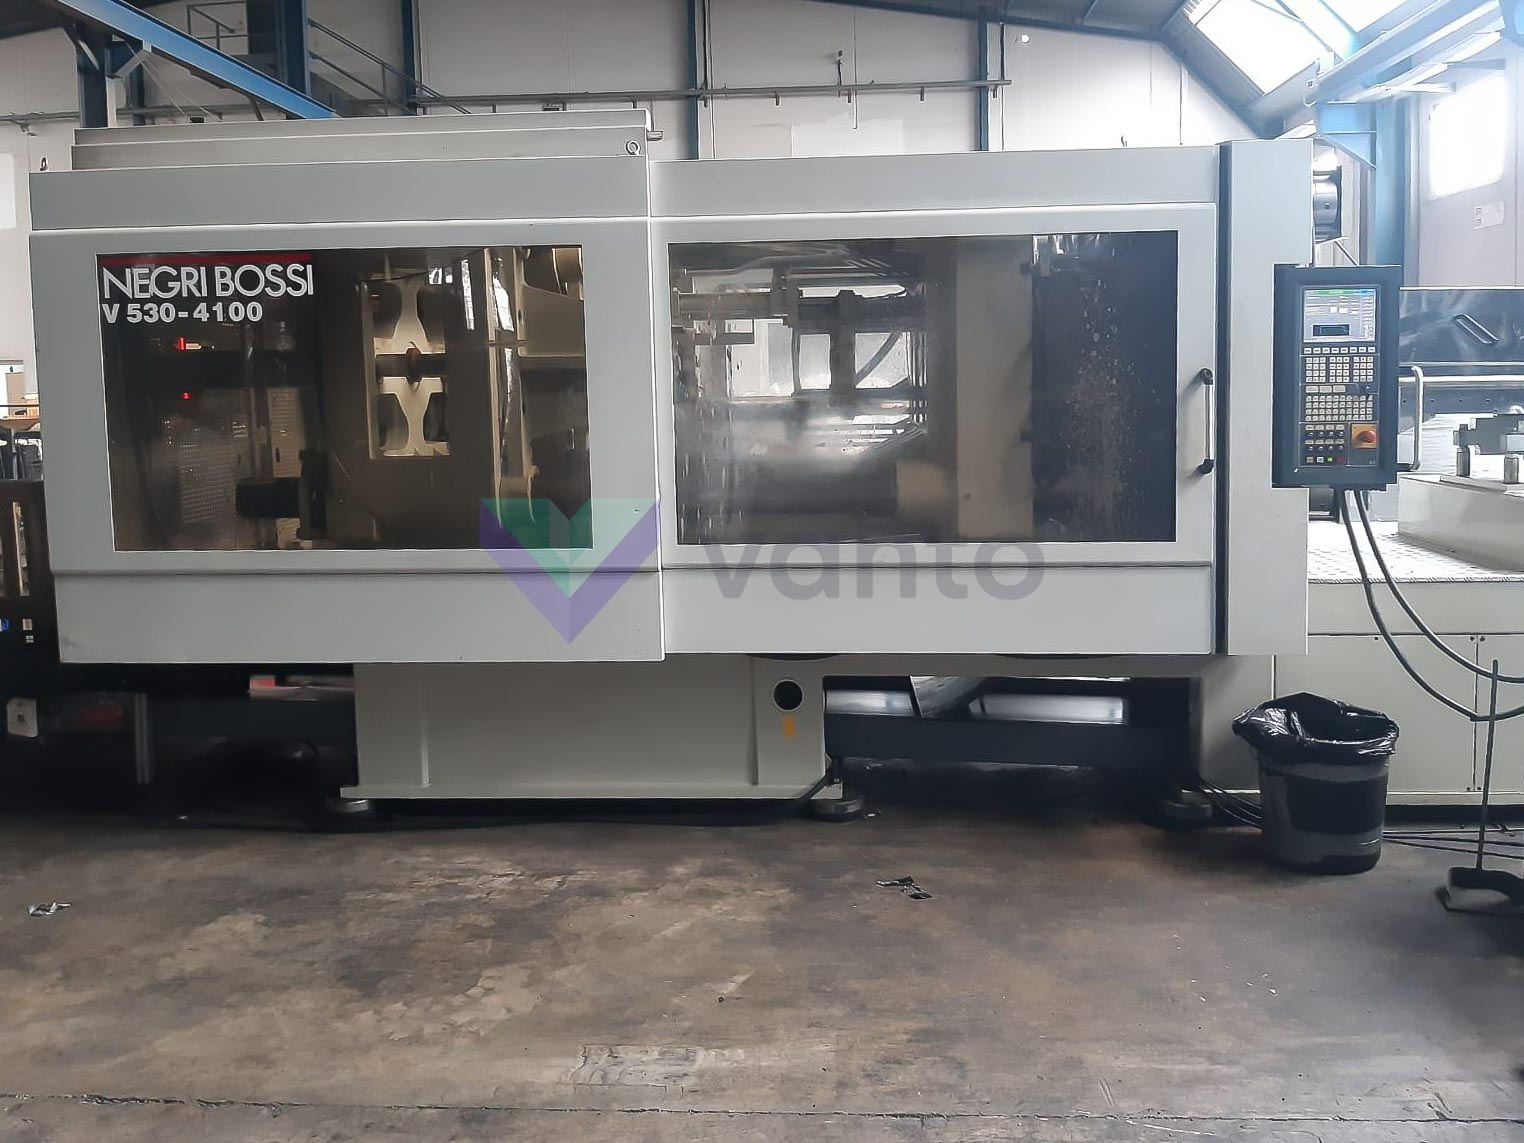 Machine de moulage par injection 530t NEGRI BOSSI CANBIO V530 - 4100 (2006) id10370